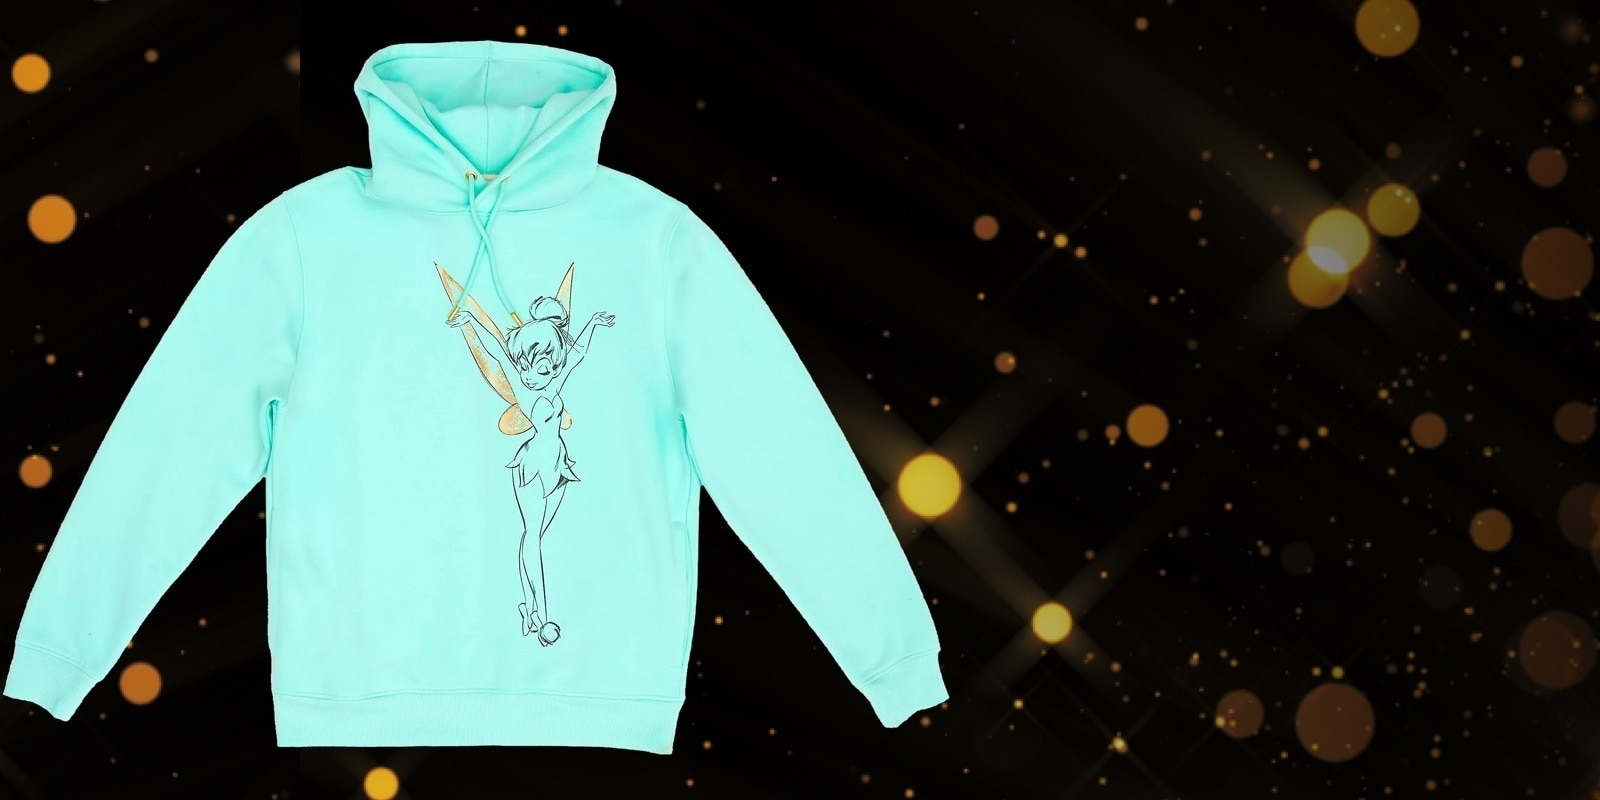 Disney Store Tinker Bell Hooded Sweatshirt For Adults